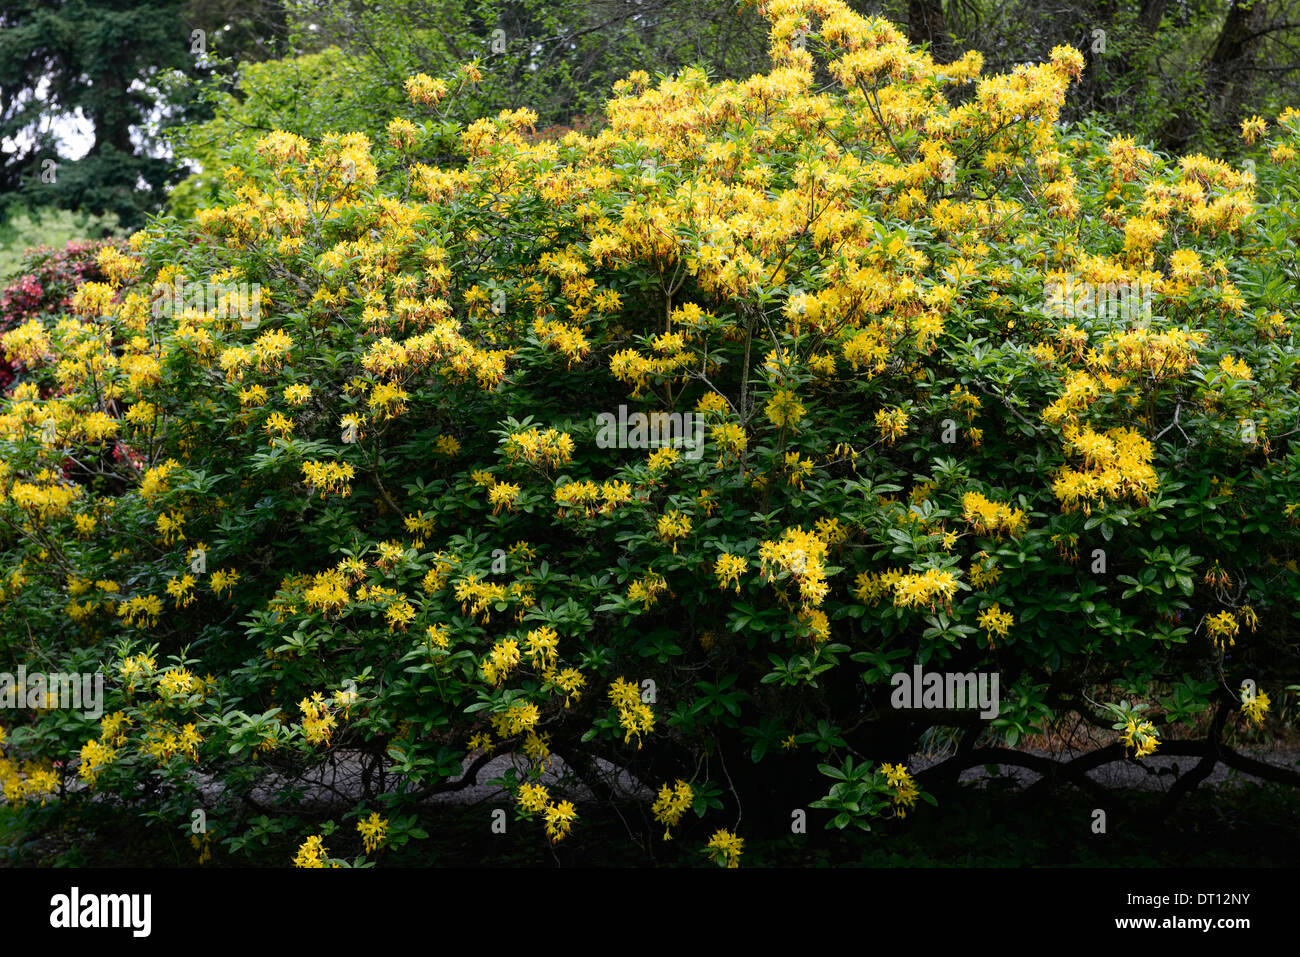 Rhododendron luteum yellow azalea pontica rhododendrons shrubs stock photo rhododendron luteum yellow azalea pontica rhododendrons shrubs yellow flowers flowering ericaceous tree shrub dhlflorist Gallery